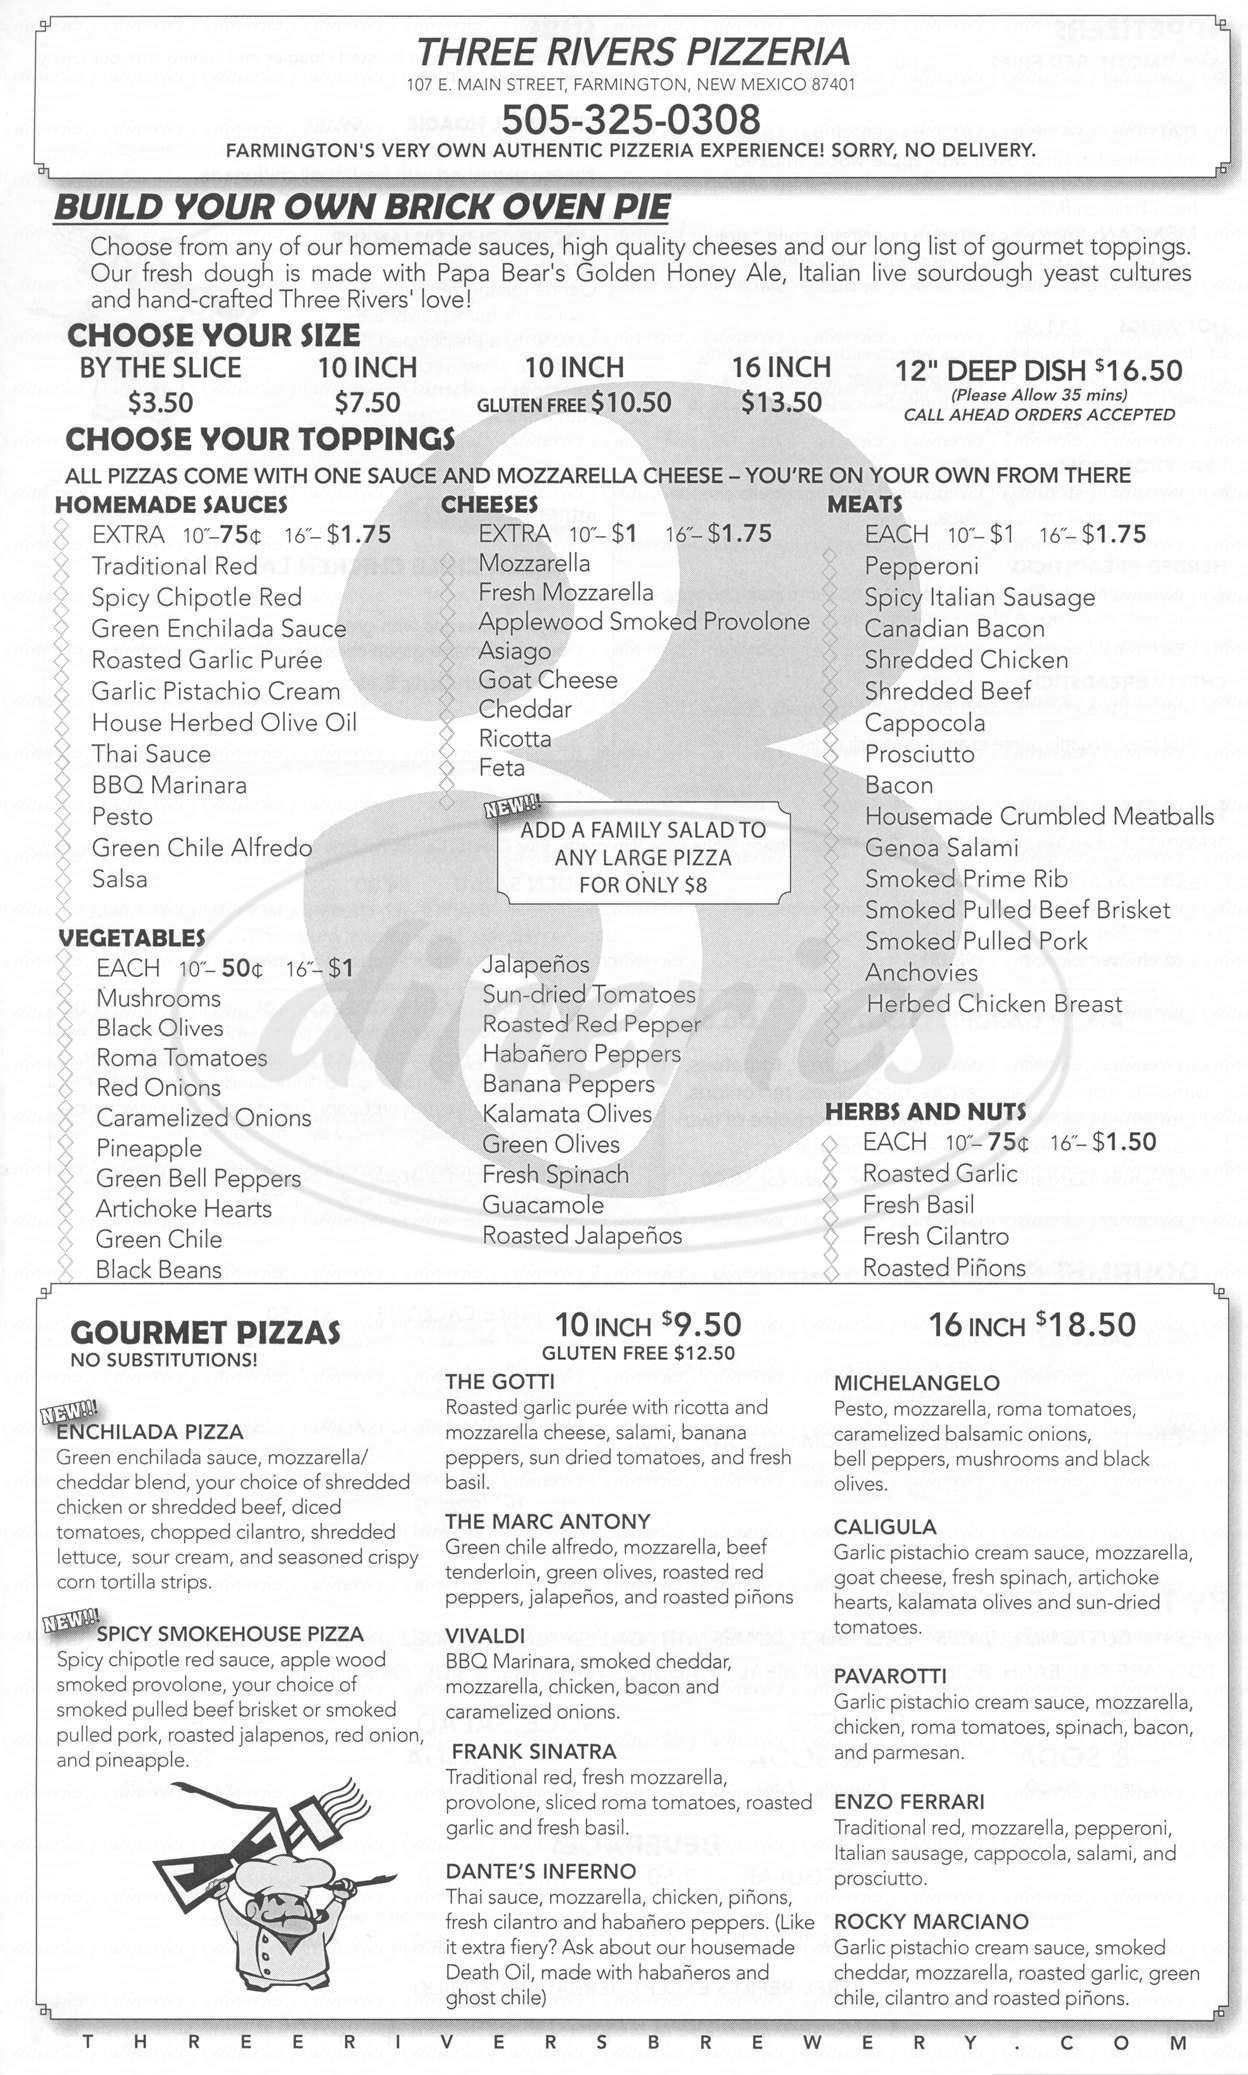 menu for Three Rivers Pizzeria